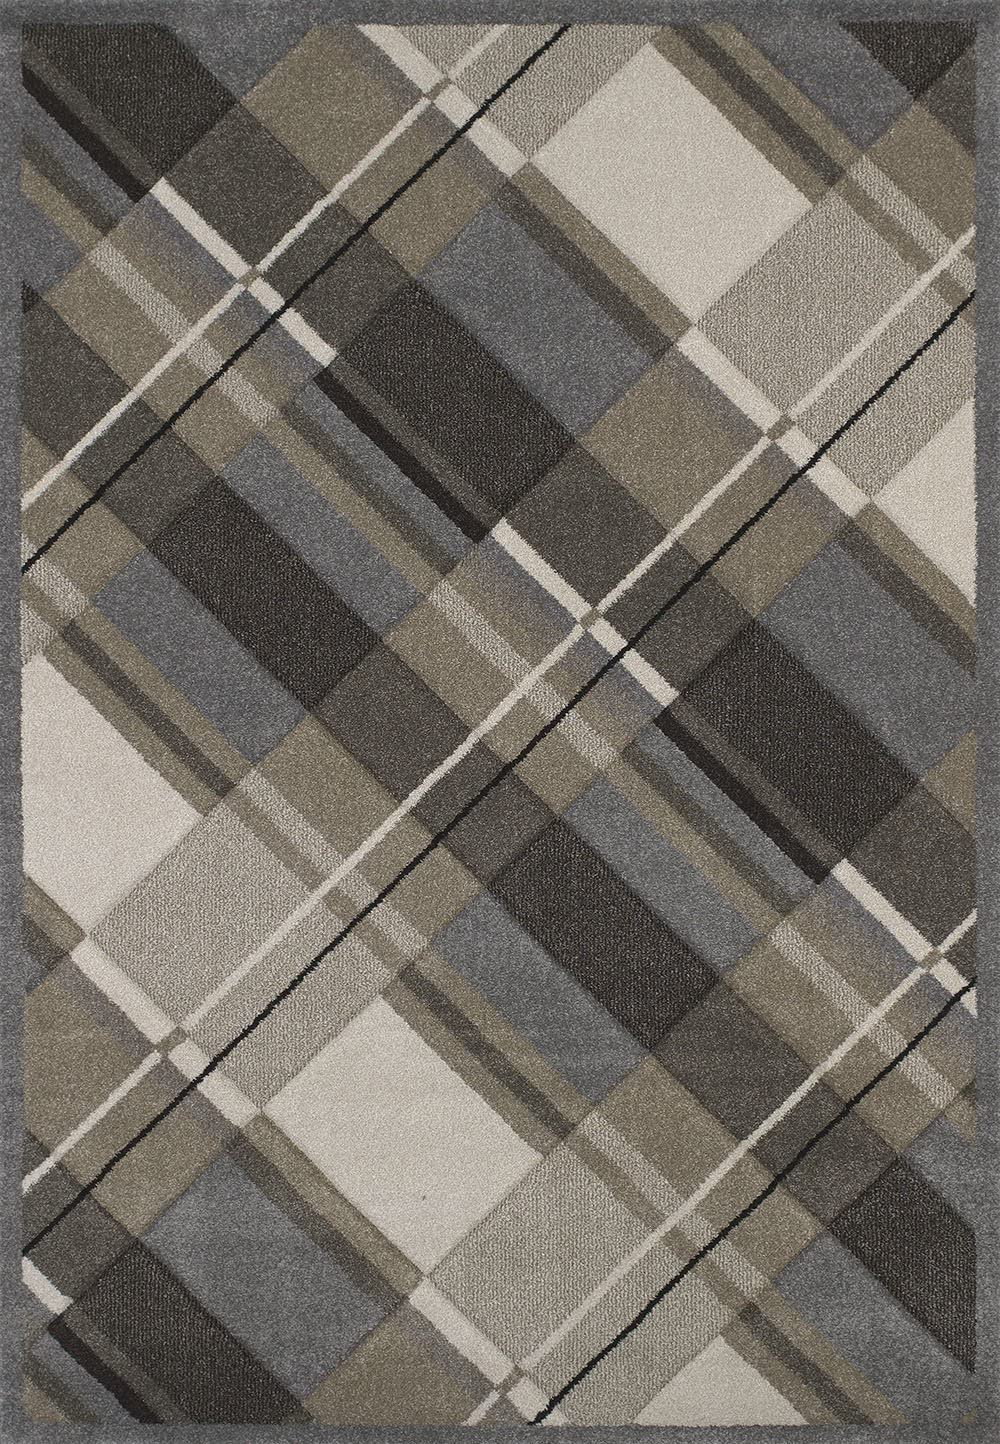 United Weavers of America Townshend Collection Journey Modern Area Rug, 7-Feet 10-Inch by 11-Feet 2-Inch, Grey